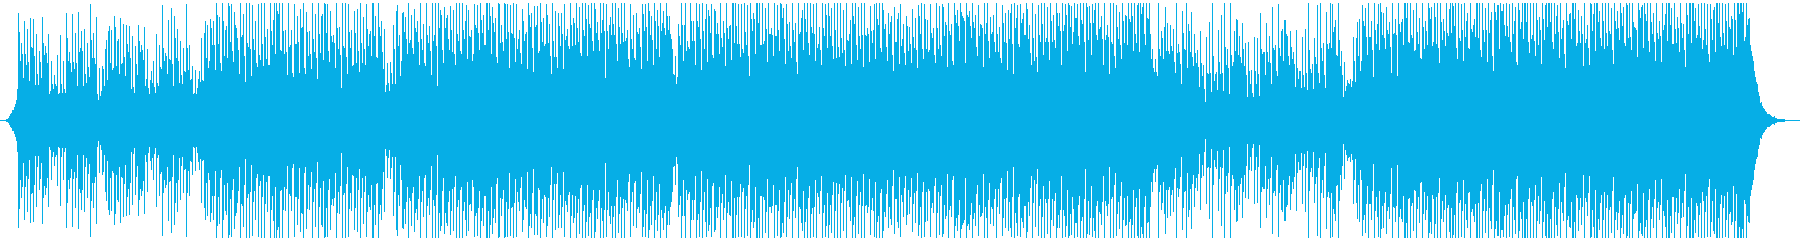 Runnig Out Of Time's reproduced waveform